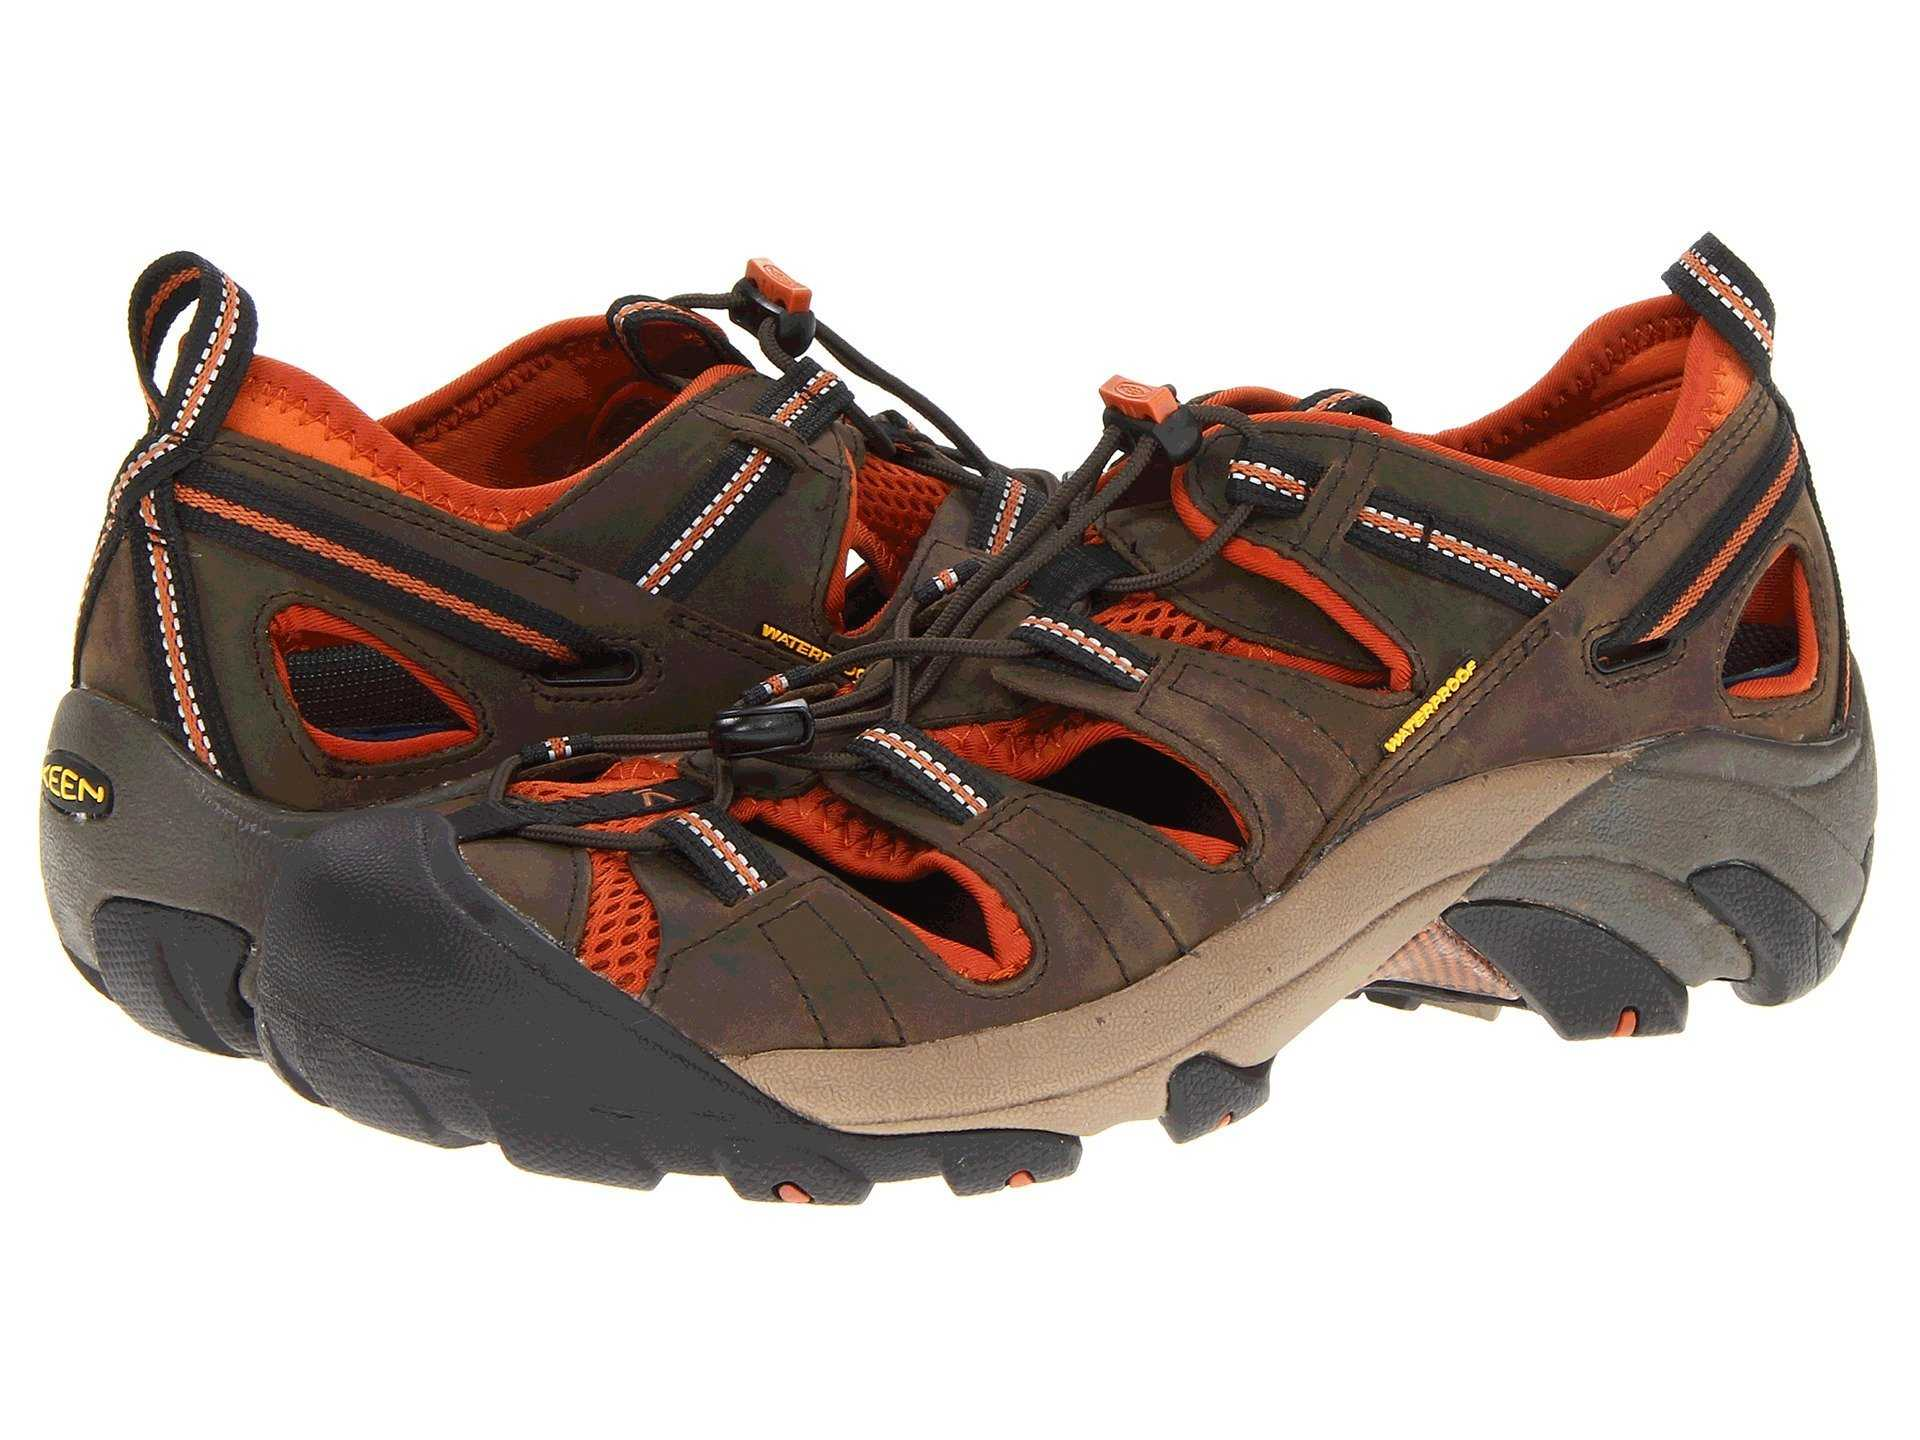 KEEN Men's Arroyo II Water Shoe